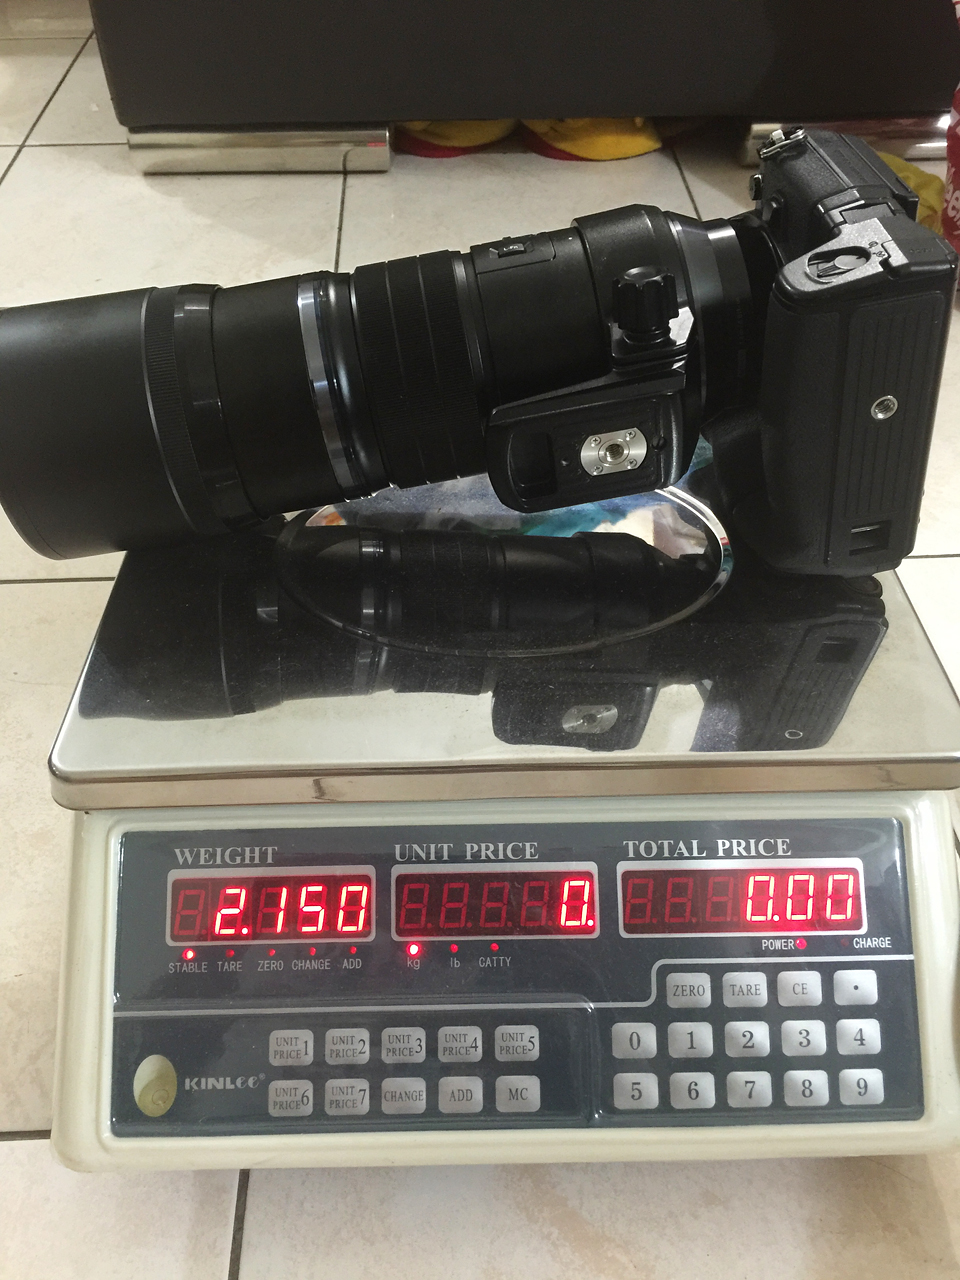 600mm F4 Birding Setup And Only 215kg Olympus Mzuiko Digital Ed 300mm F 4 Is Pro Lens With F40 Liewwk